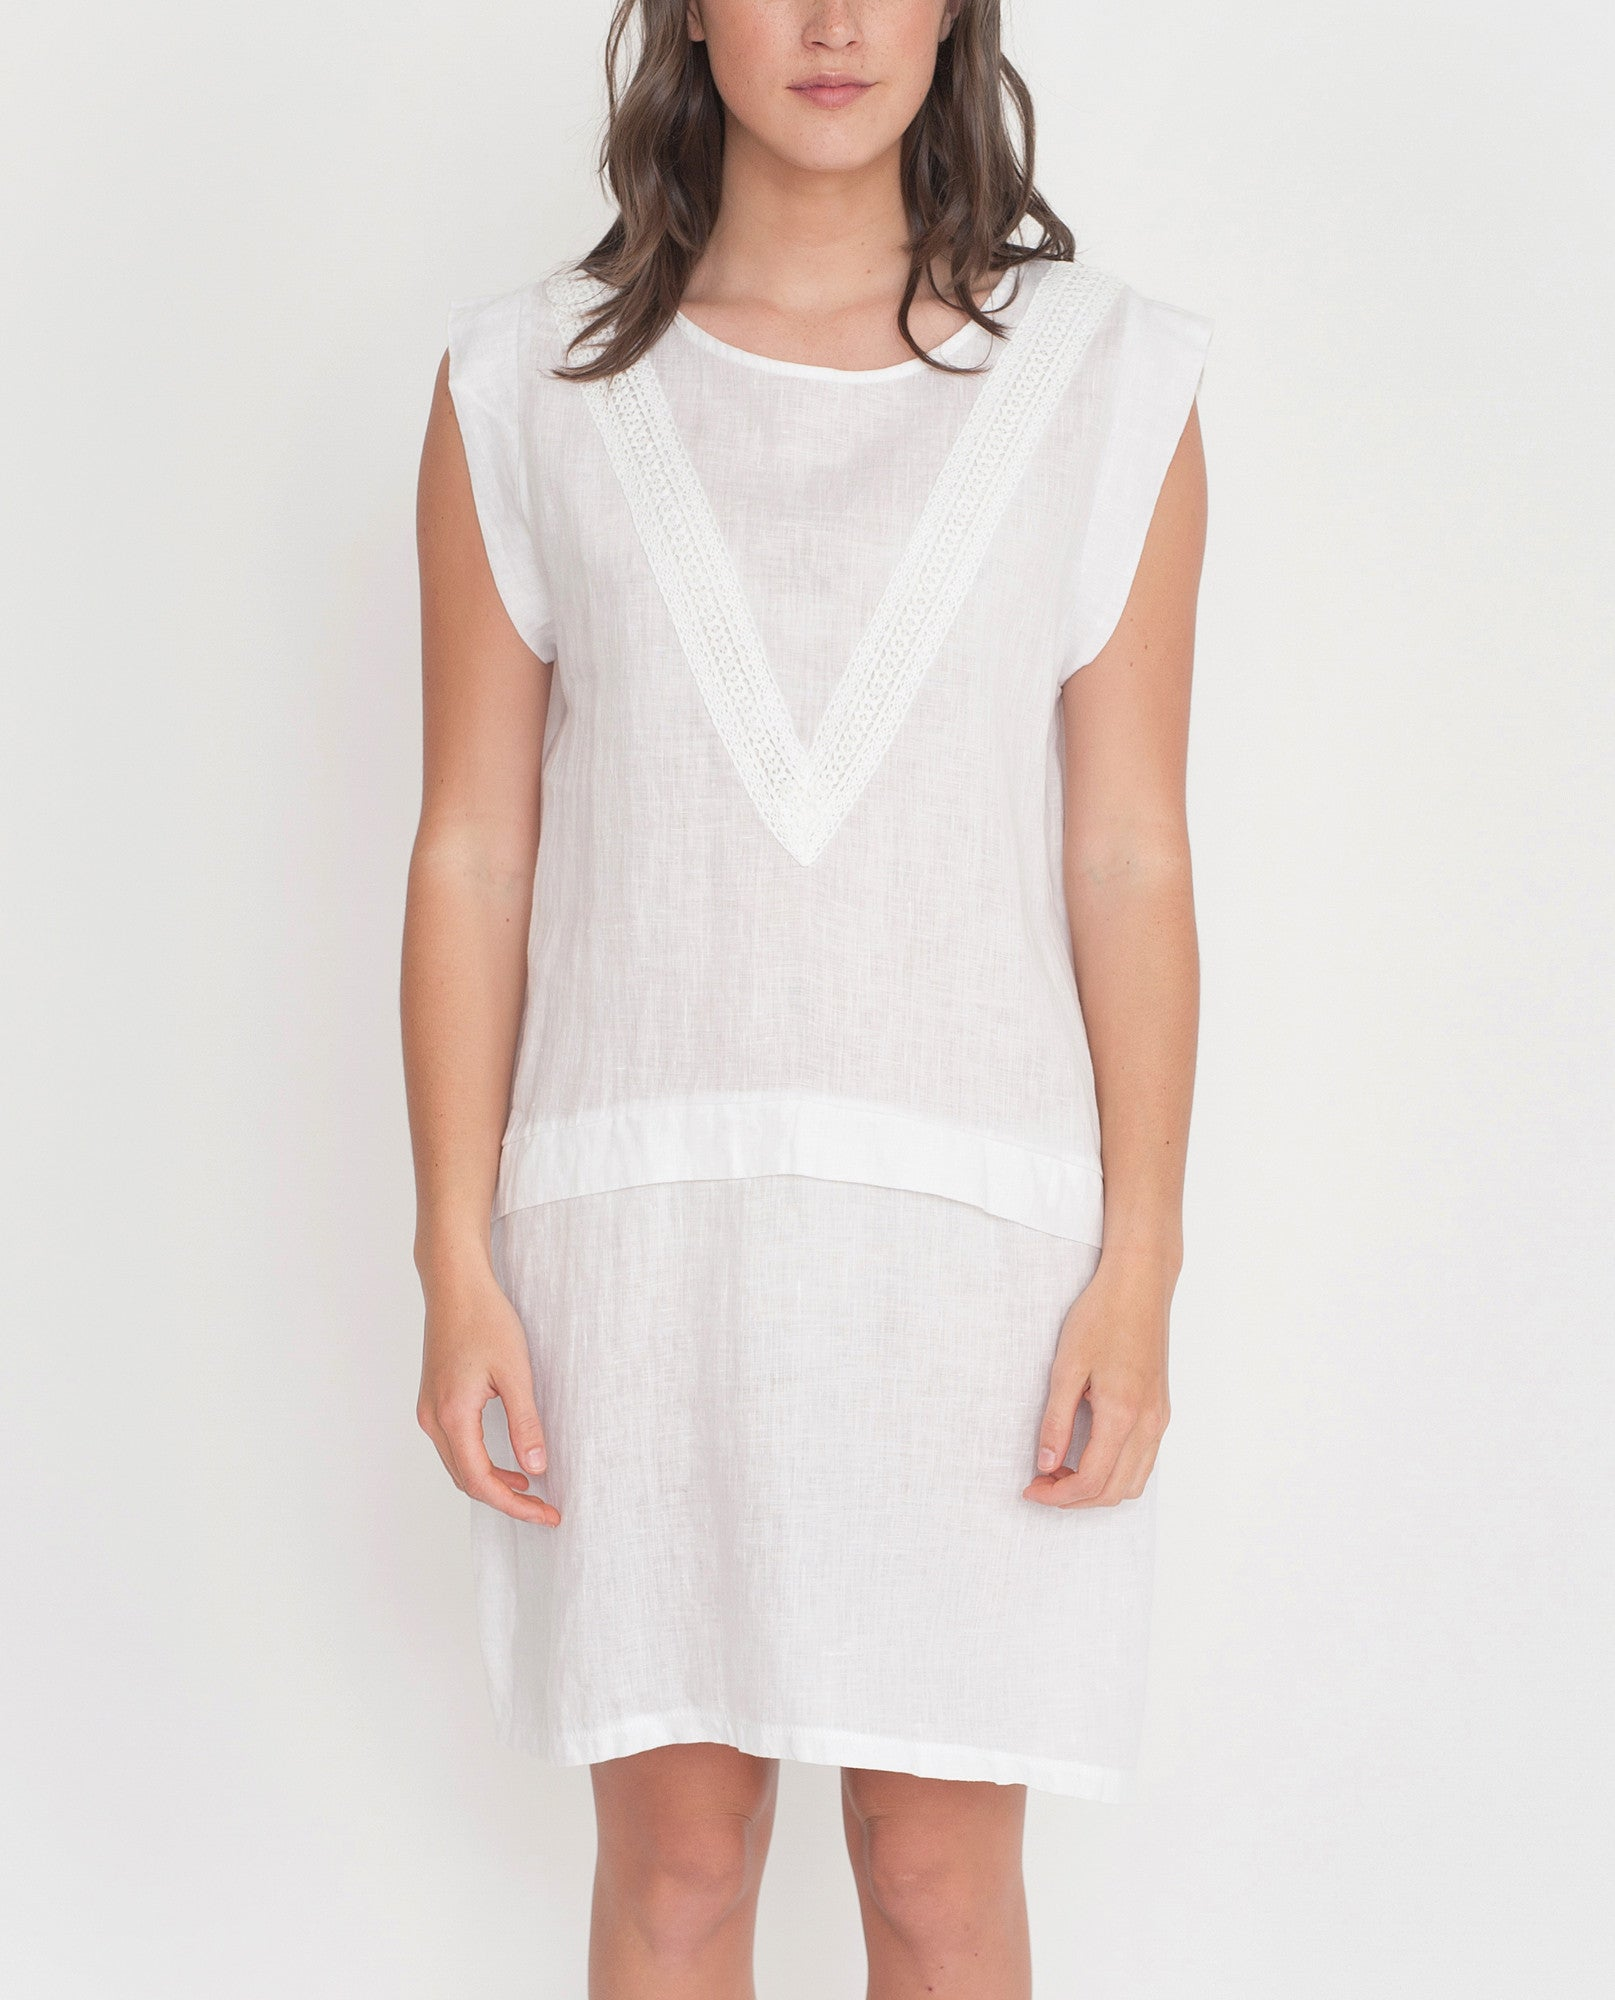 HADLEY Organic Cotton And Linen Dress In White from Beaumont Organic